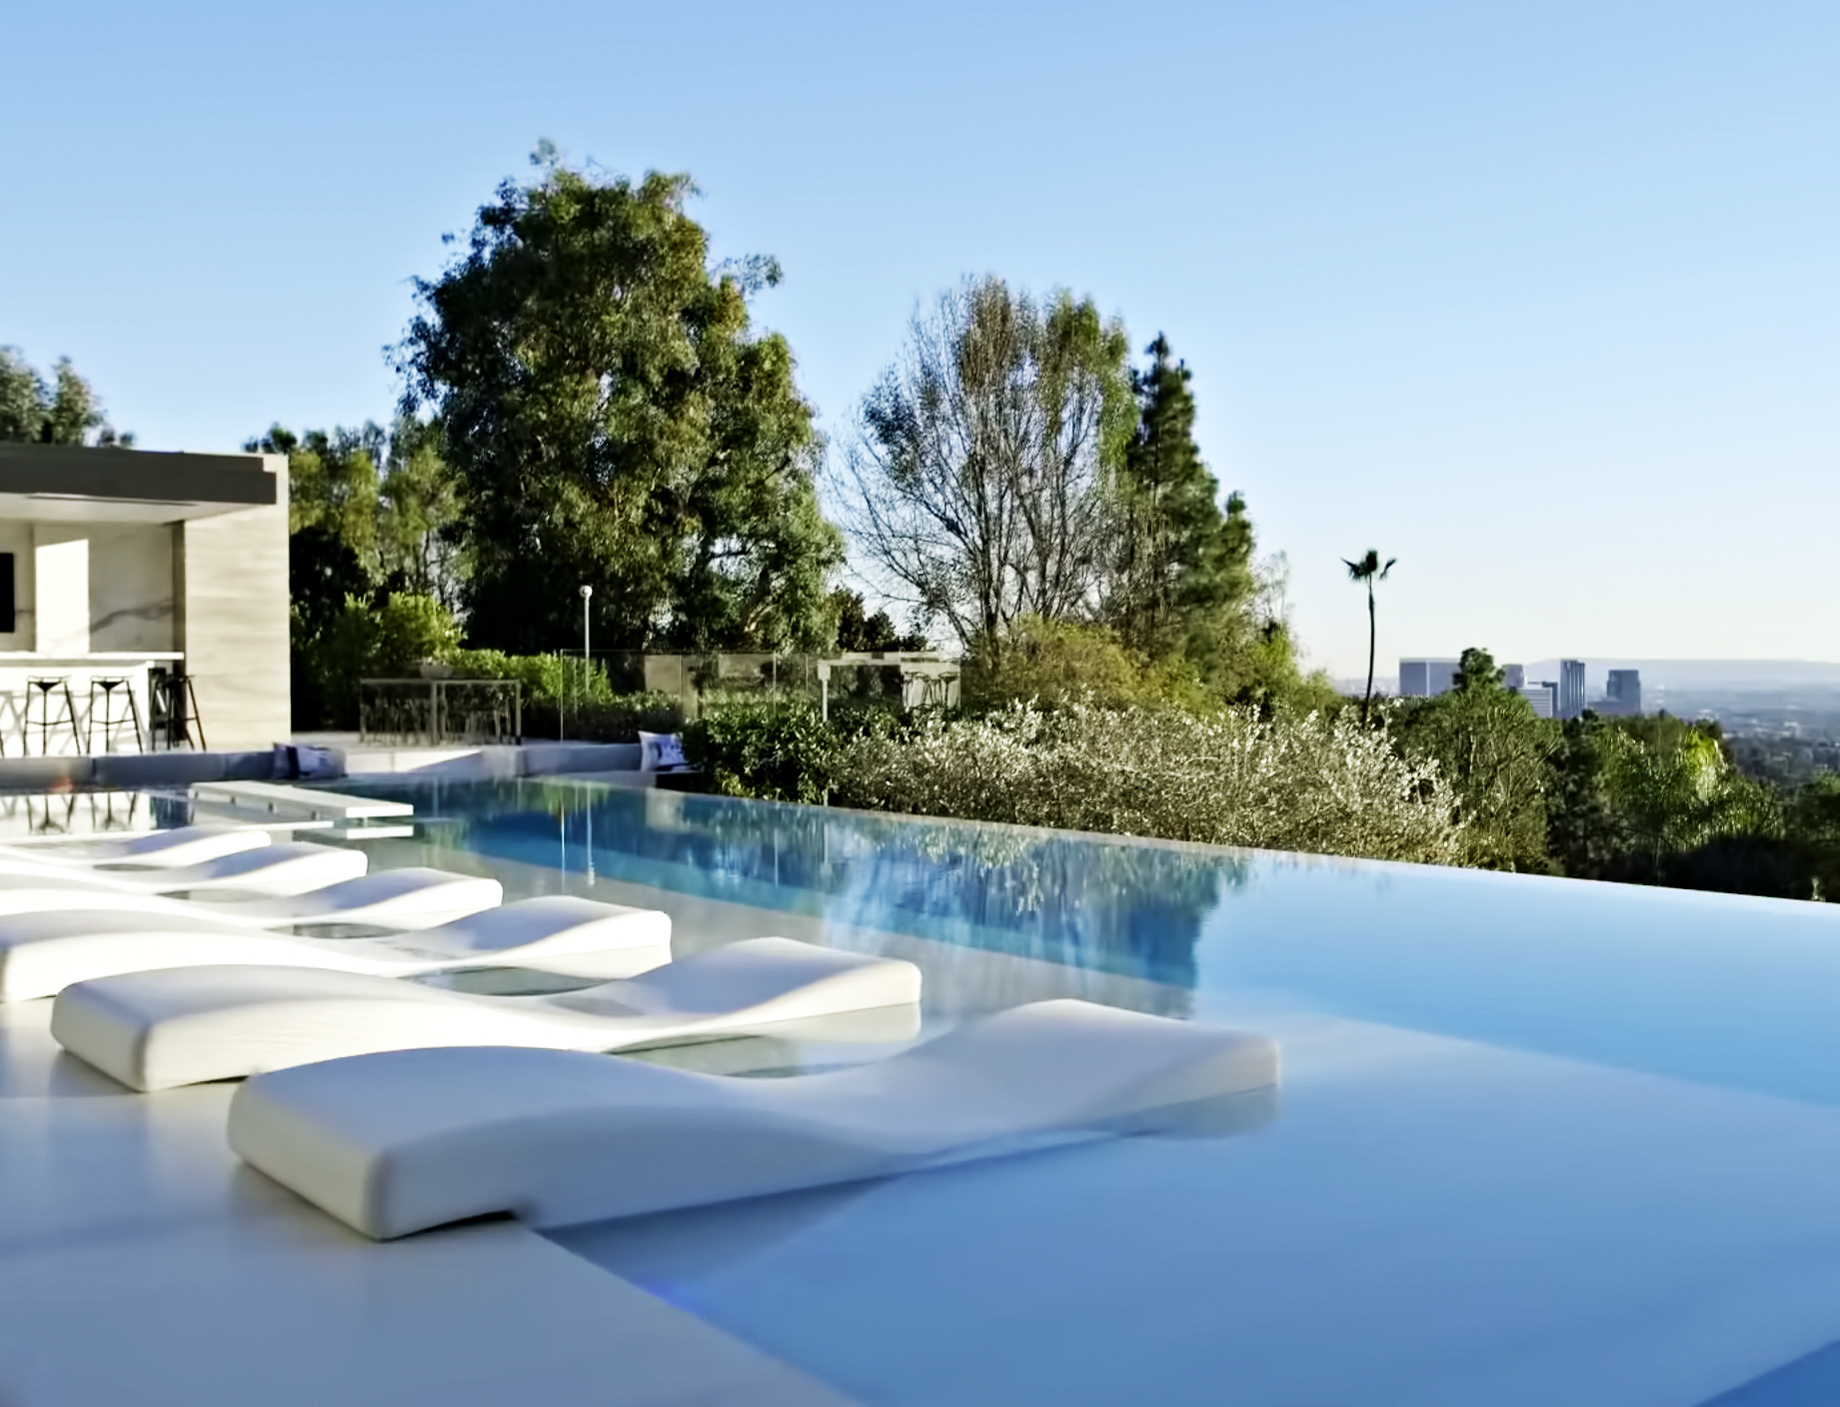 Beverly Crest Luxury Home - 9945 Beverly Grove Drive, Beverly Hills, CA, USA